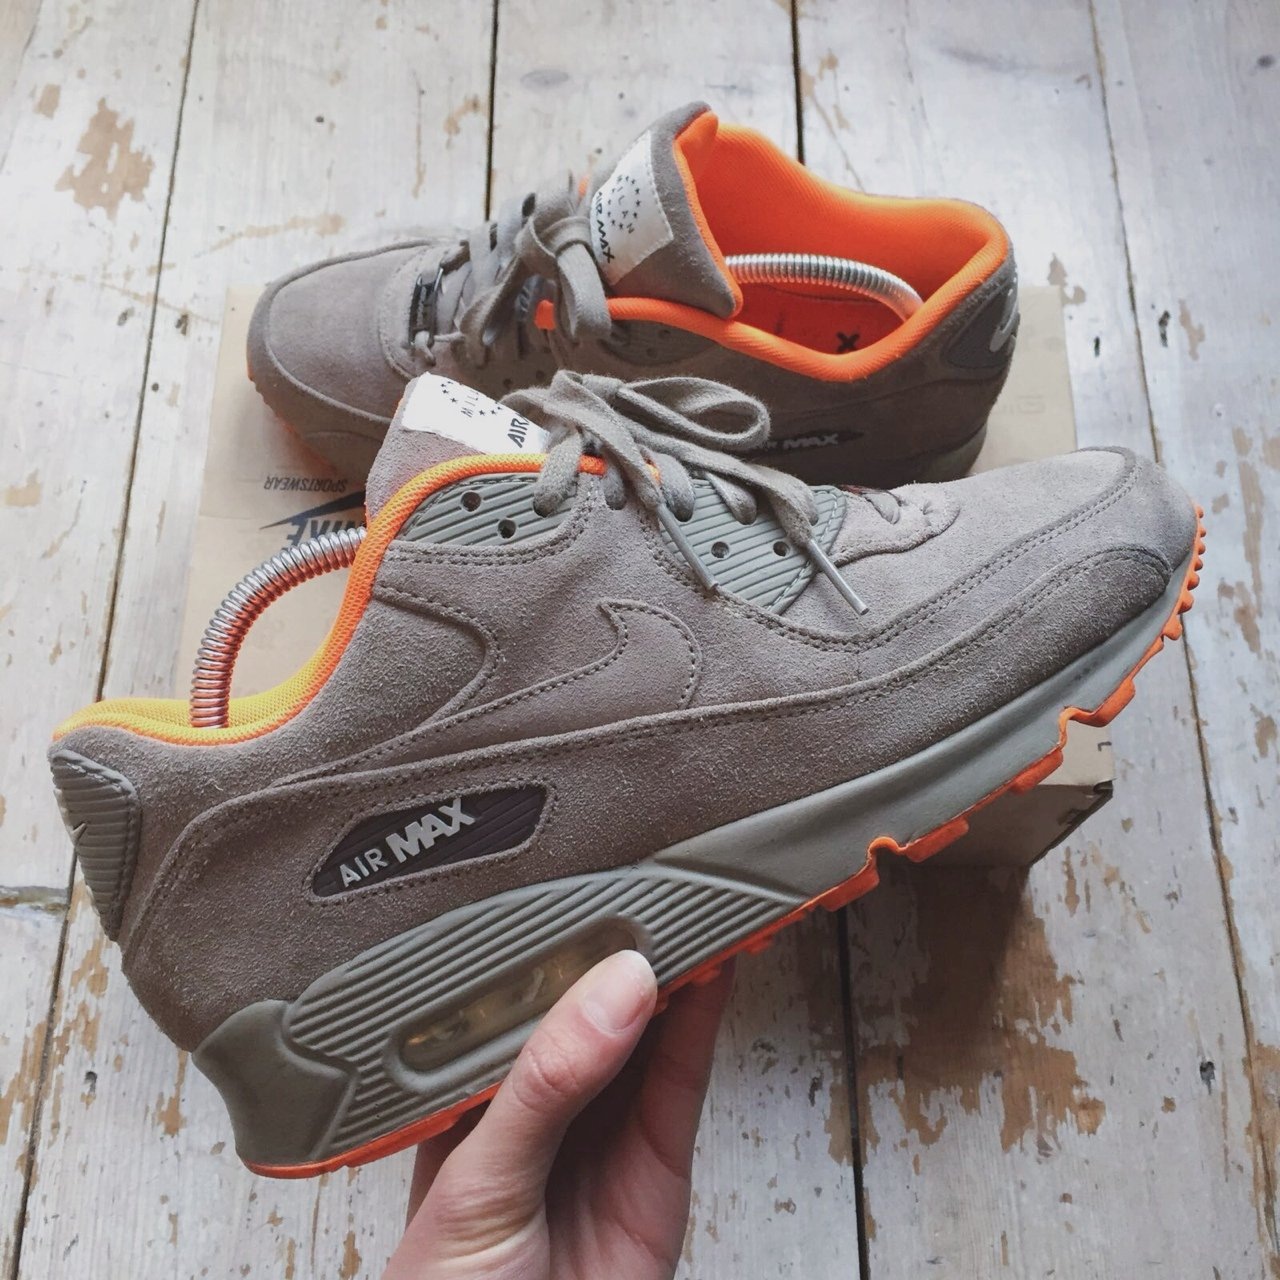 the best attitude 713ae 5f94d  ncamps. 2 years ago. London, UK. Nike Air max 90 Milan.